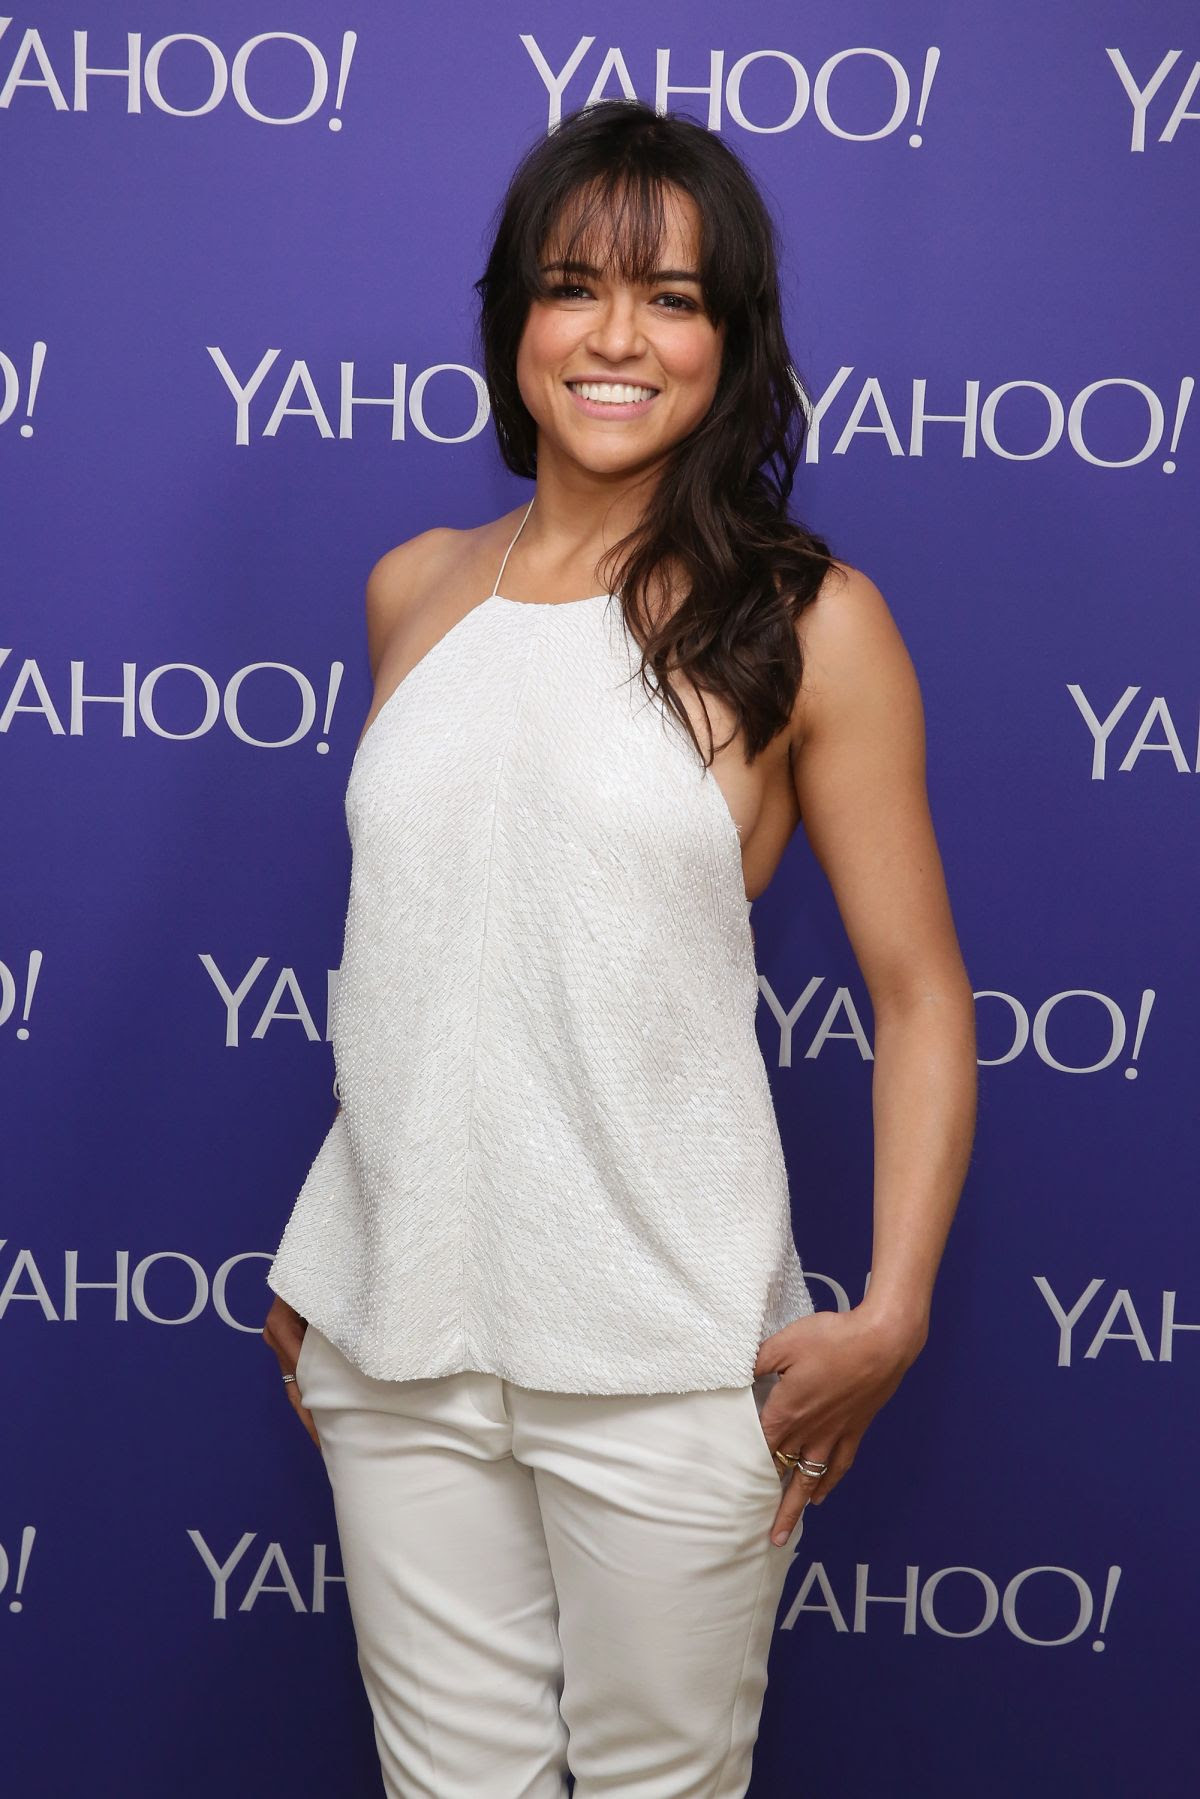 MICHELLE RODRIGUEZ at 2015 Yahoo Digital Content Newfronts in New York